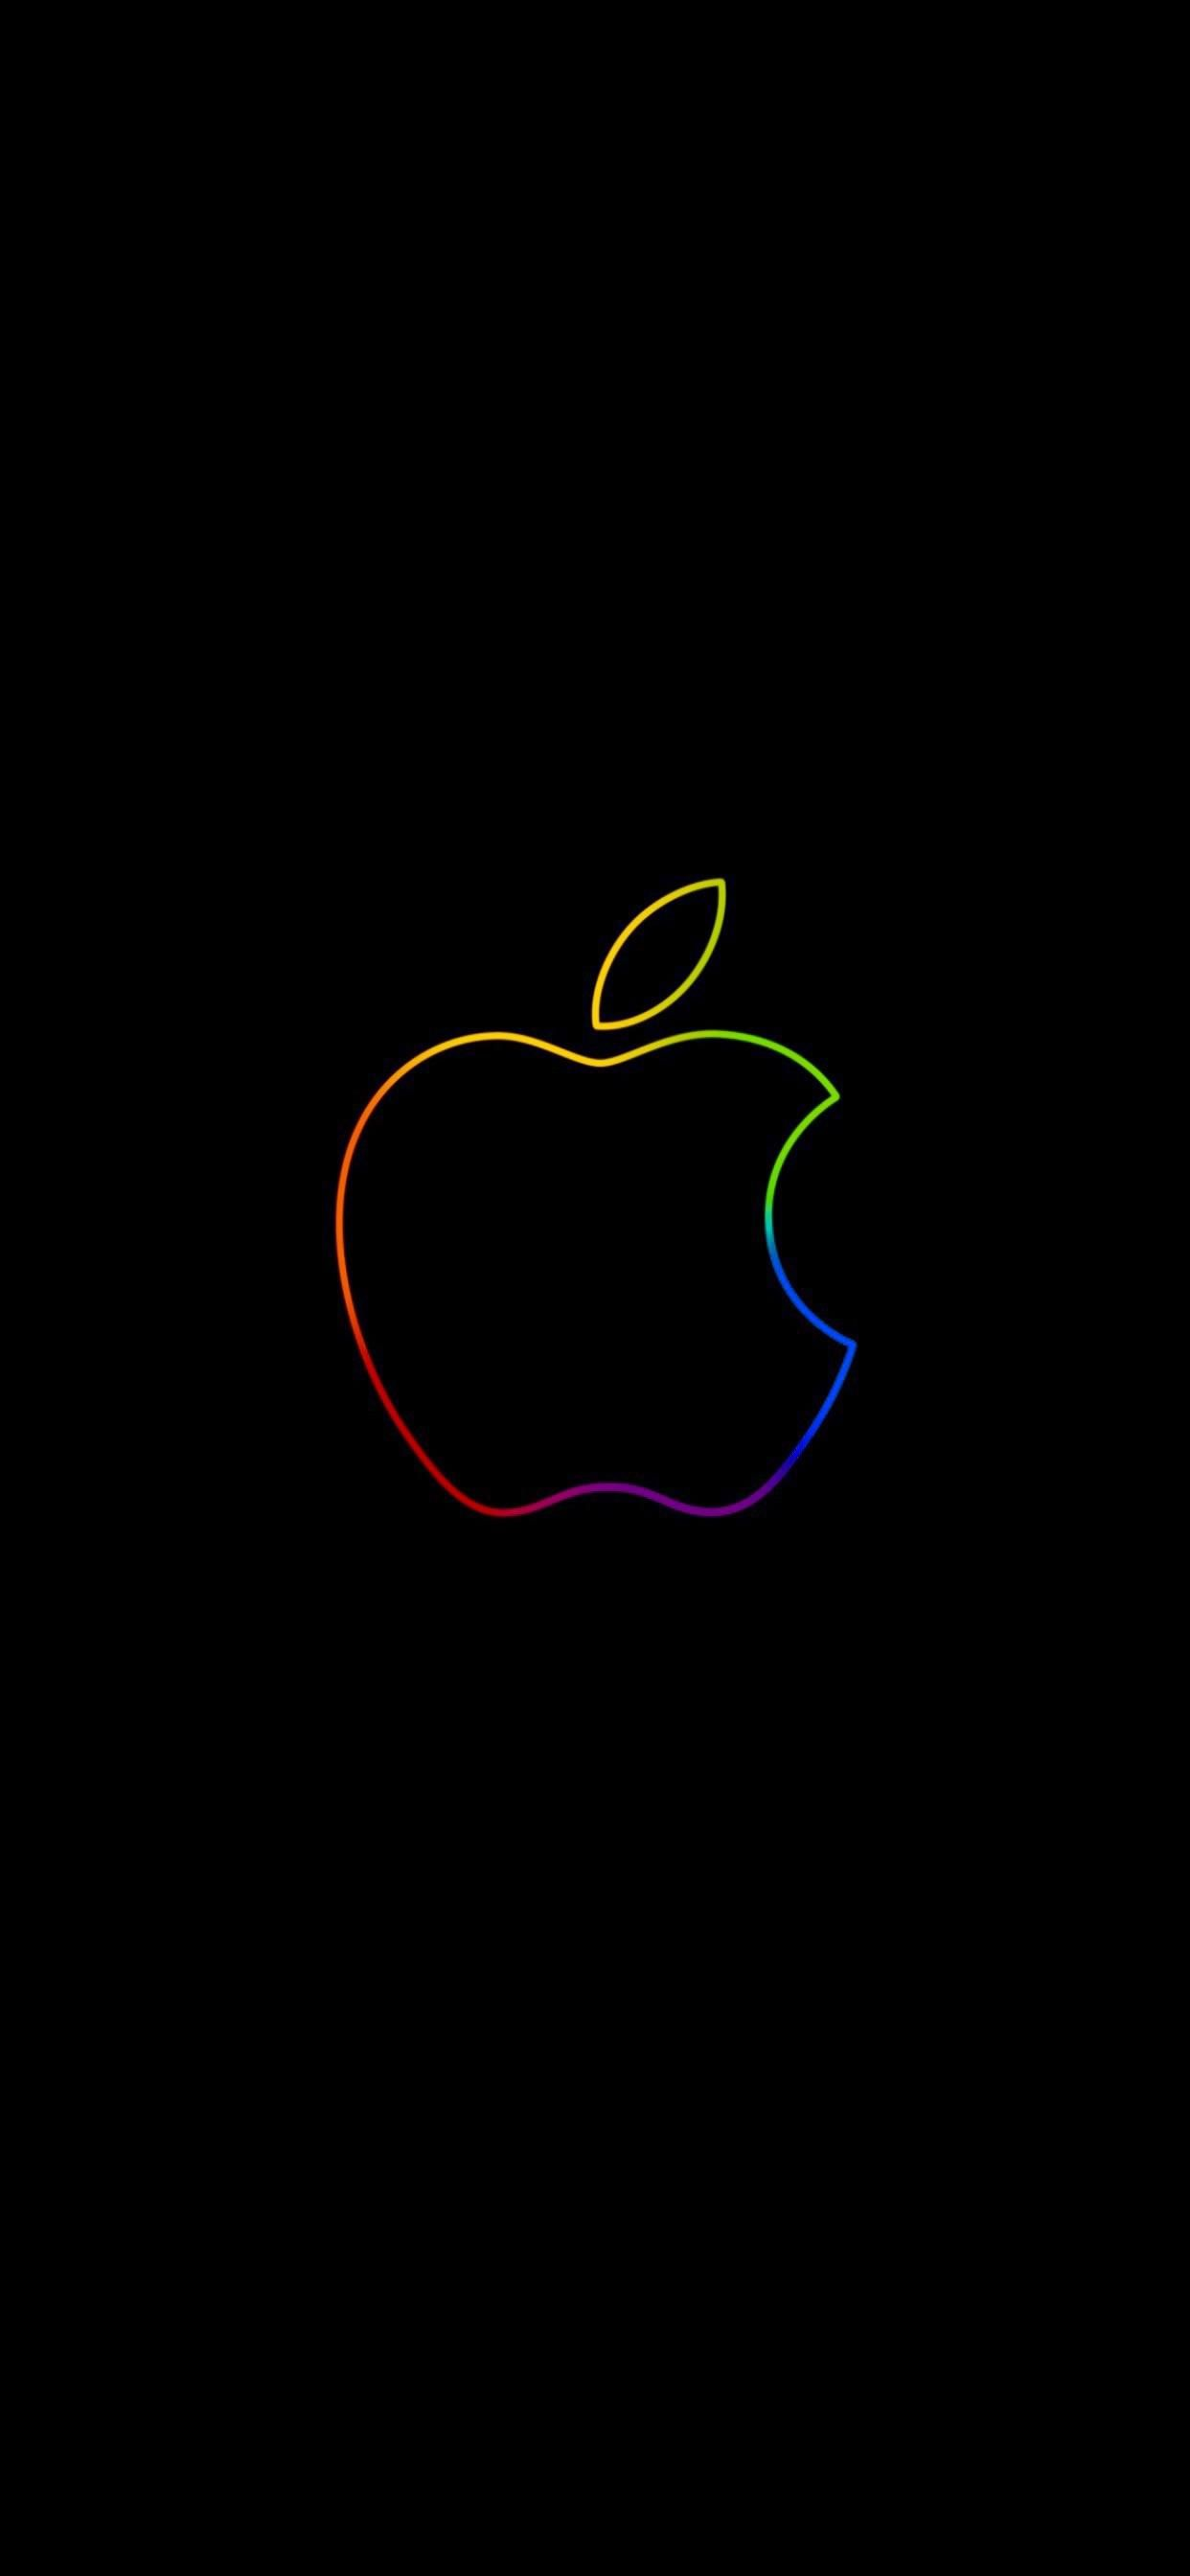 Apple Logo Neon Iphone Wallpaper Logo Apple Logo Wallpaper Iphone Apple Wallpaper